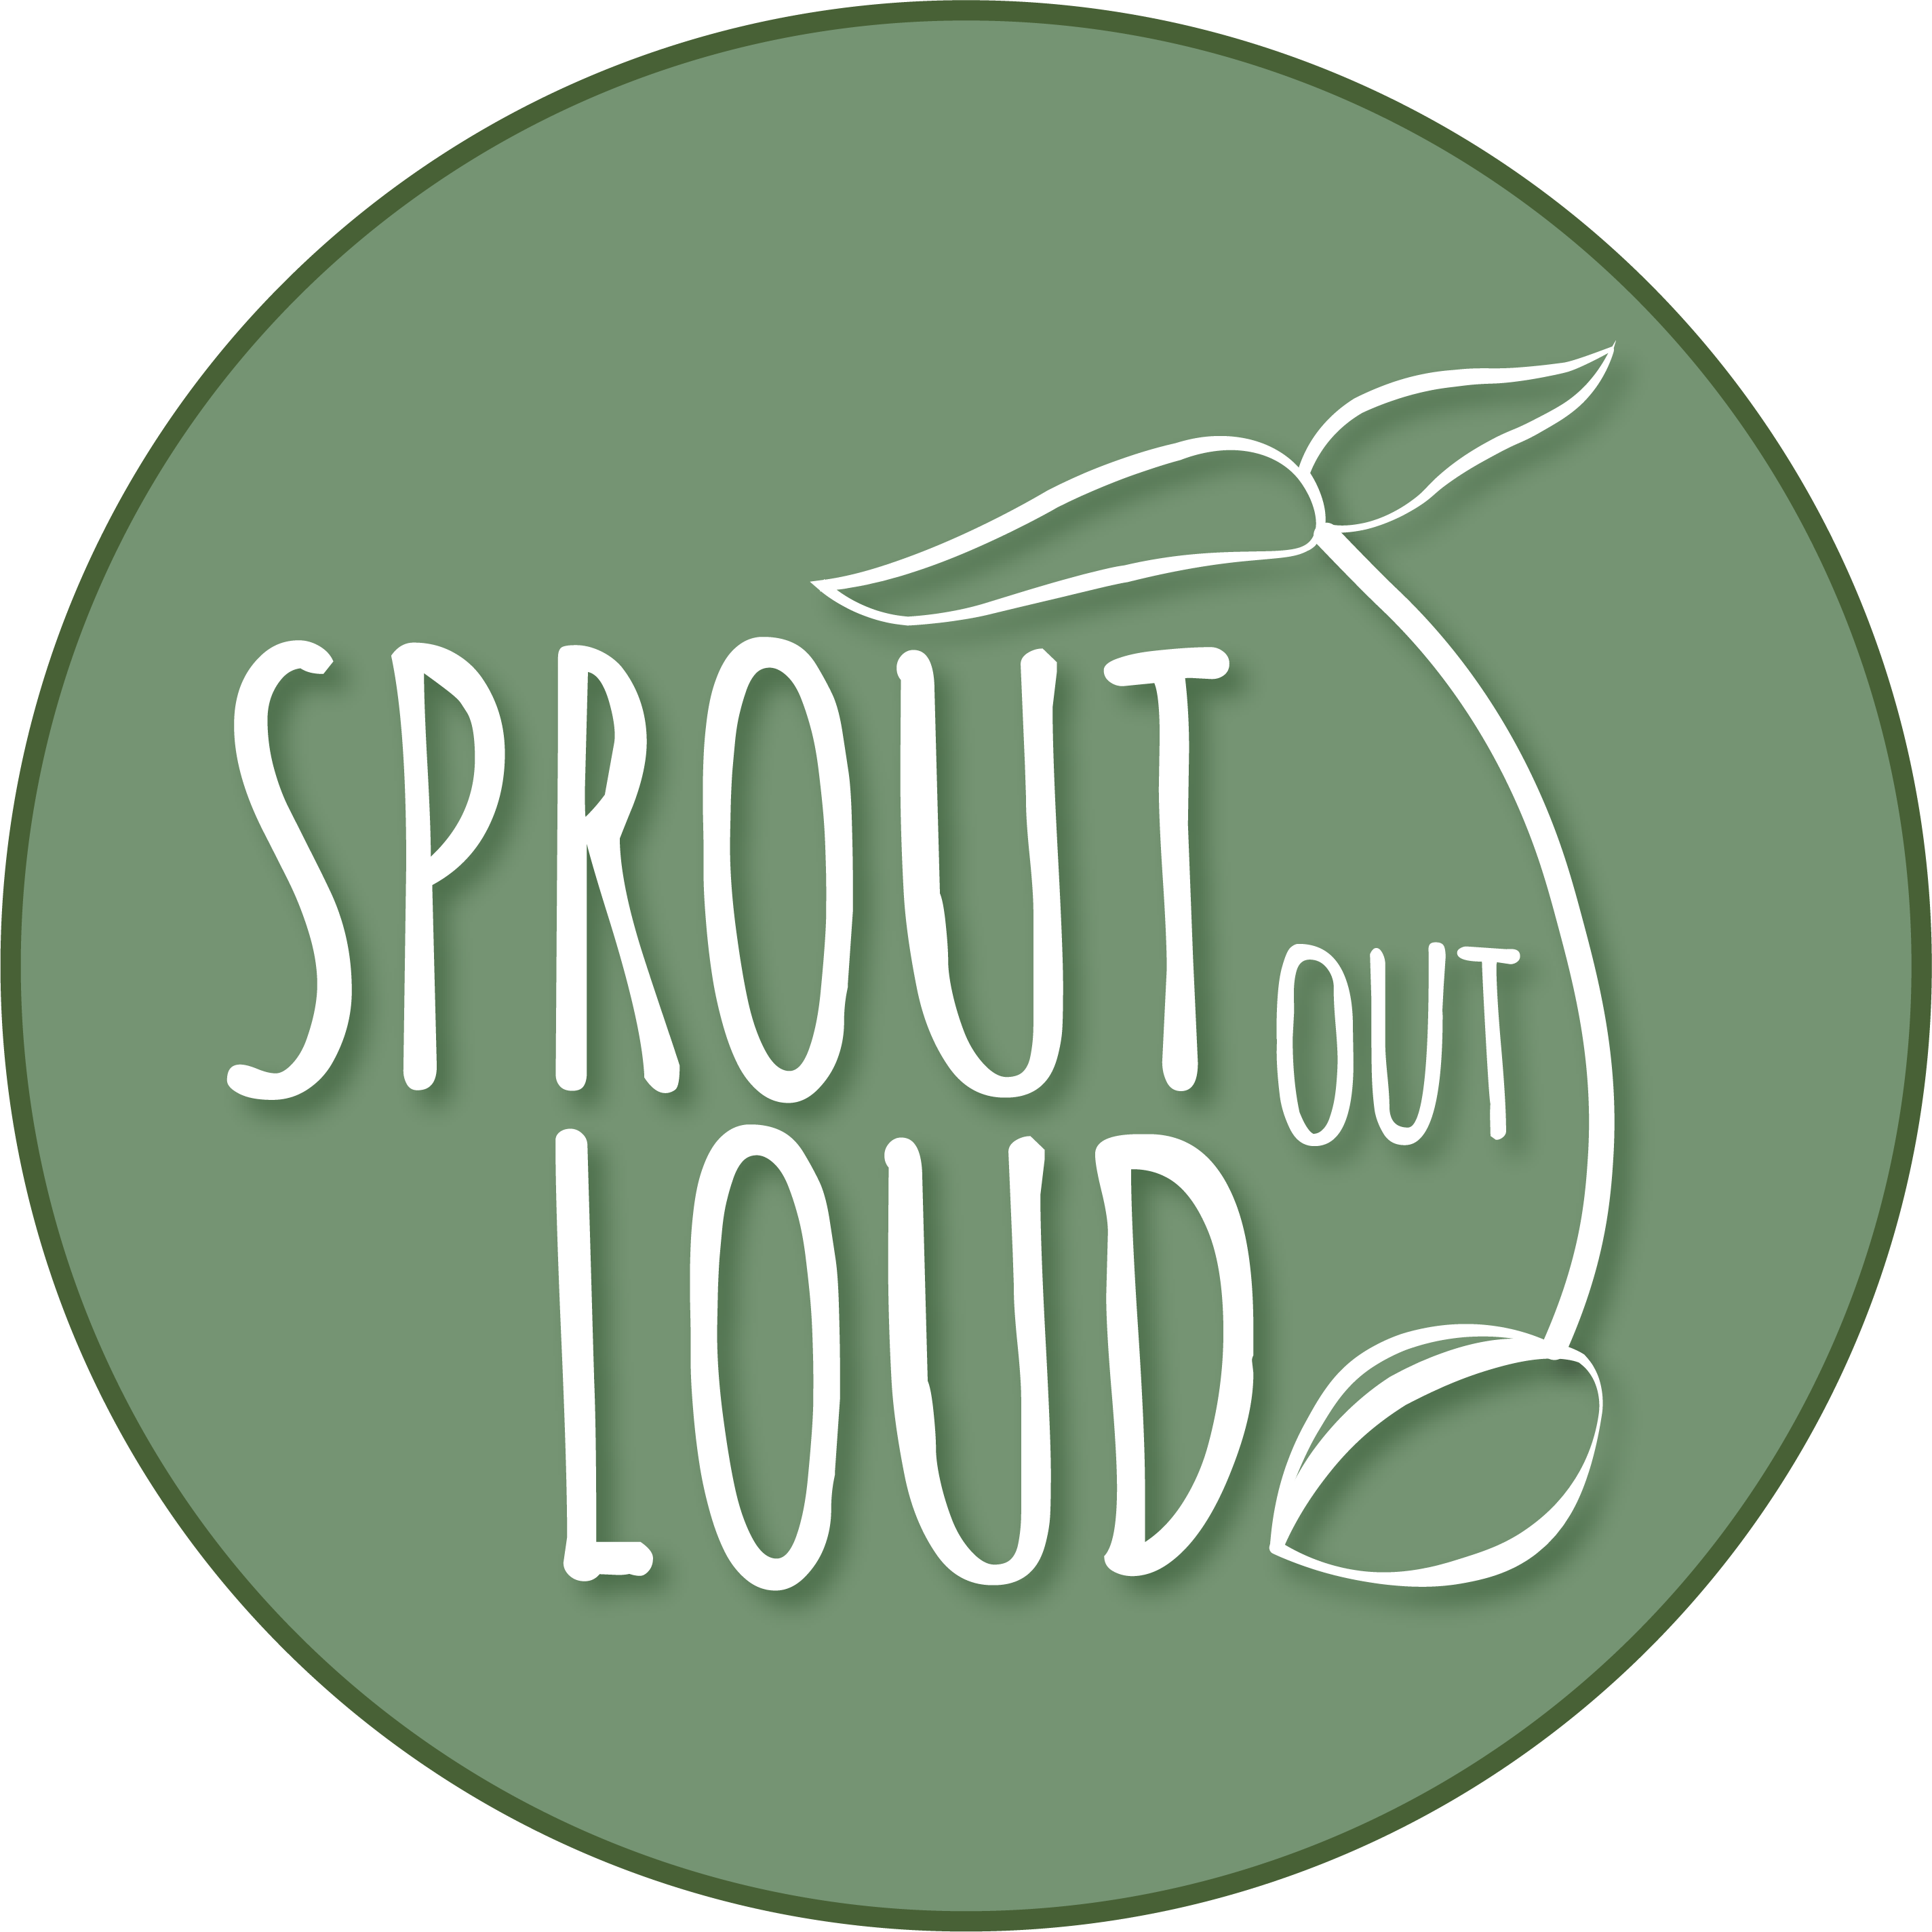 Sprout Out Loud